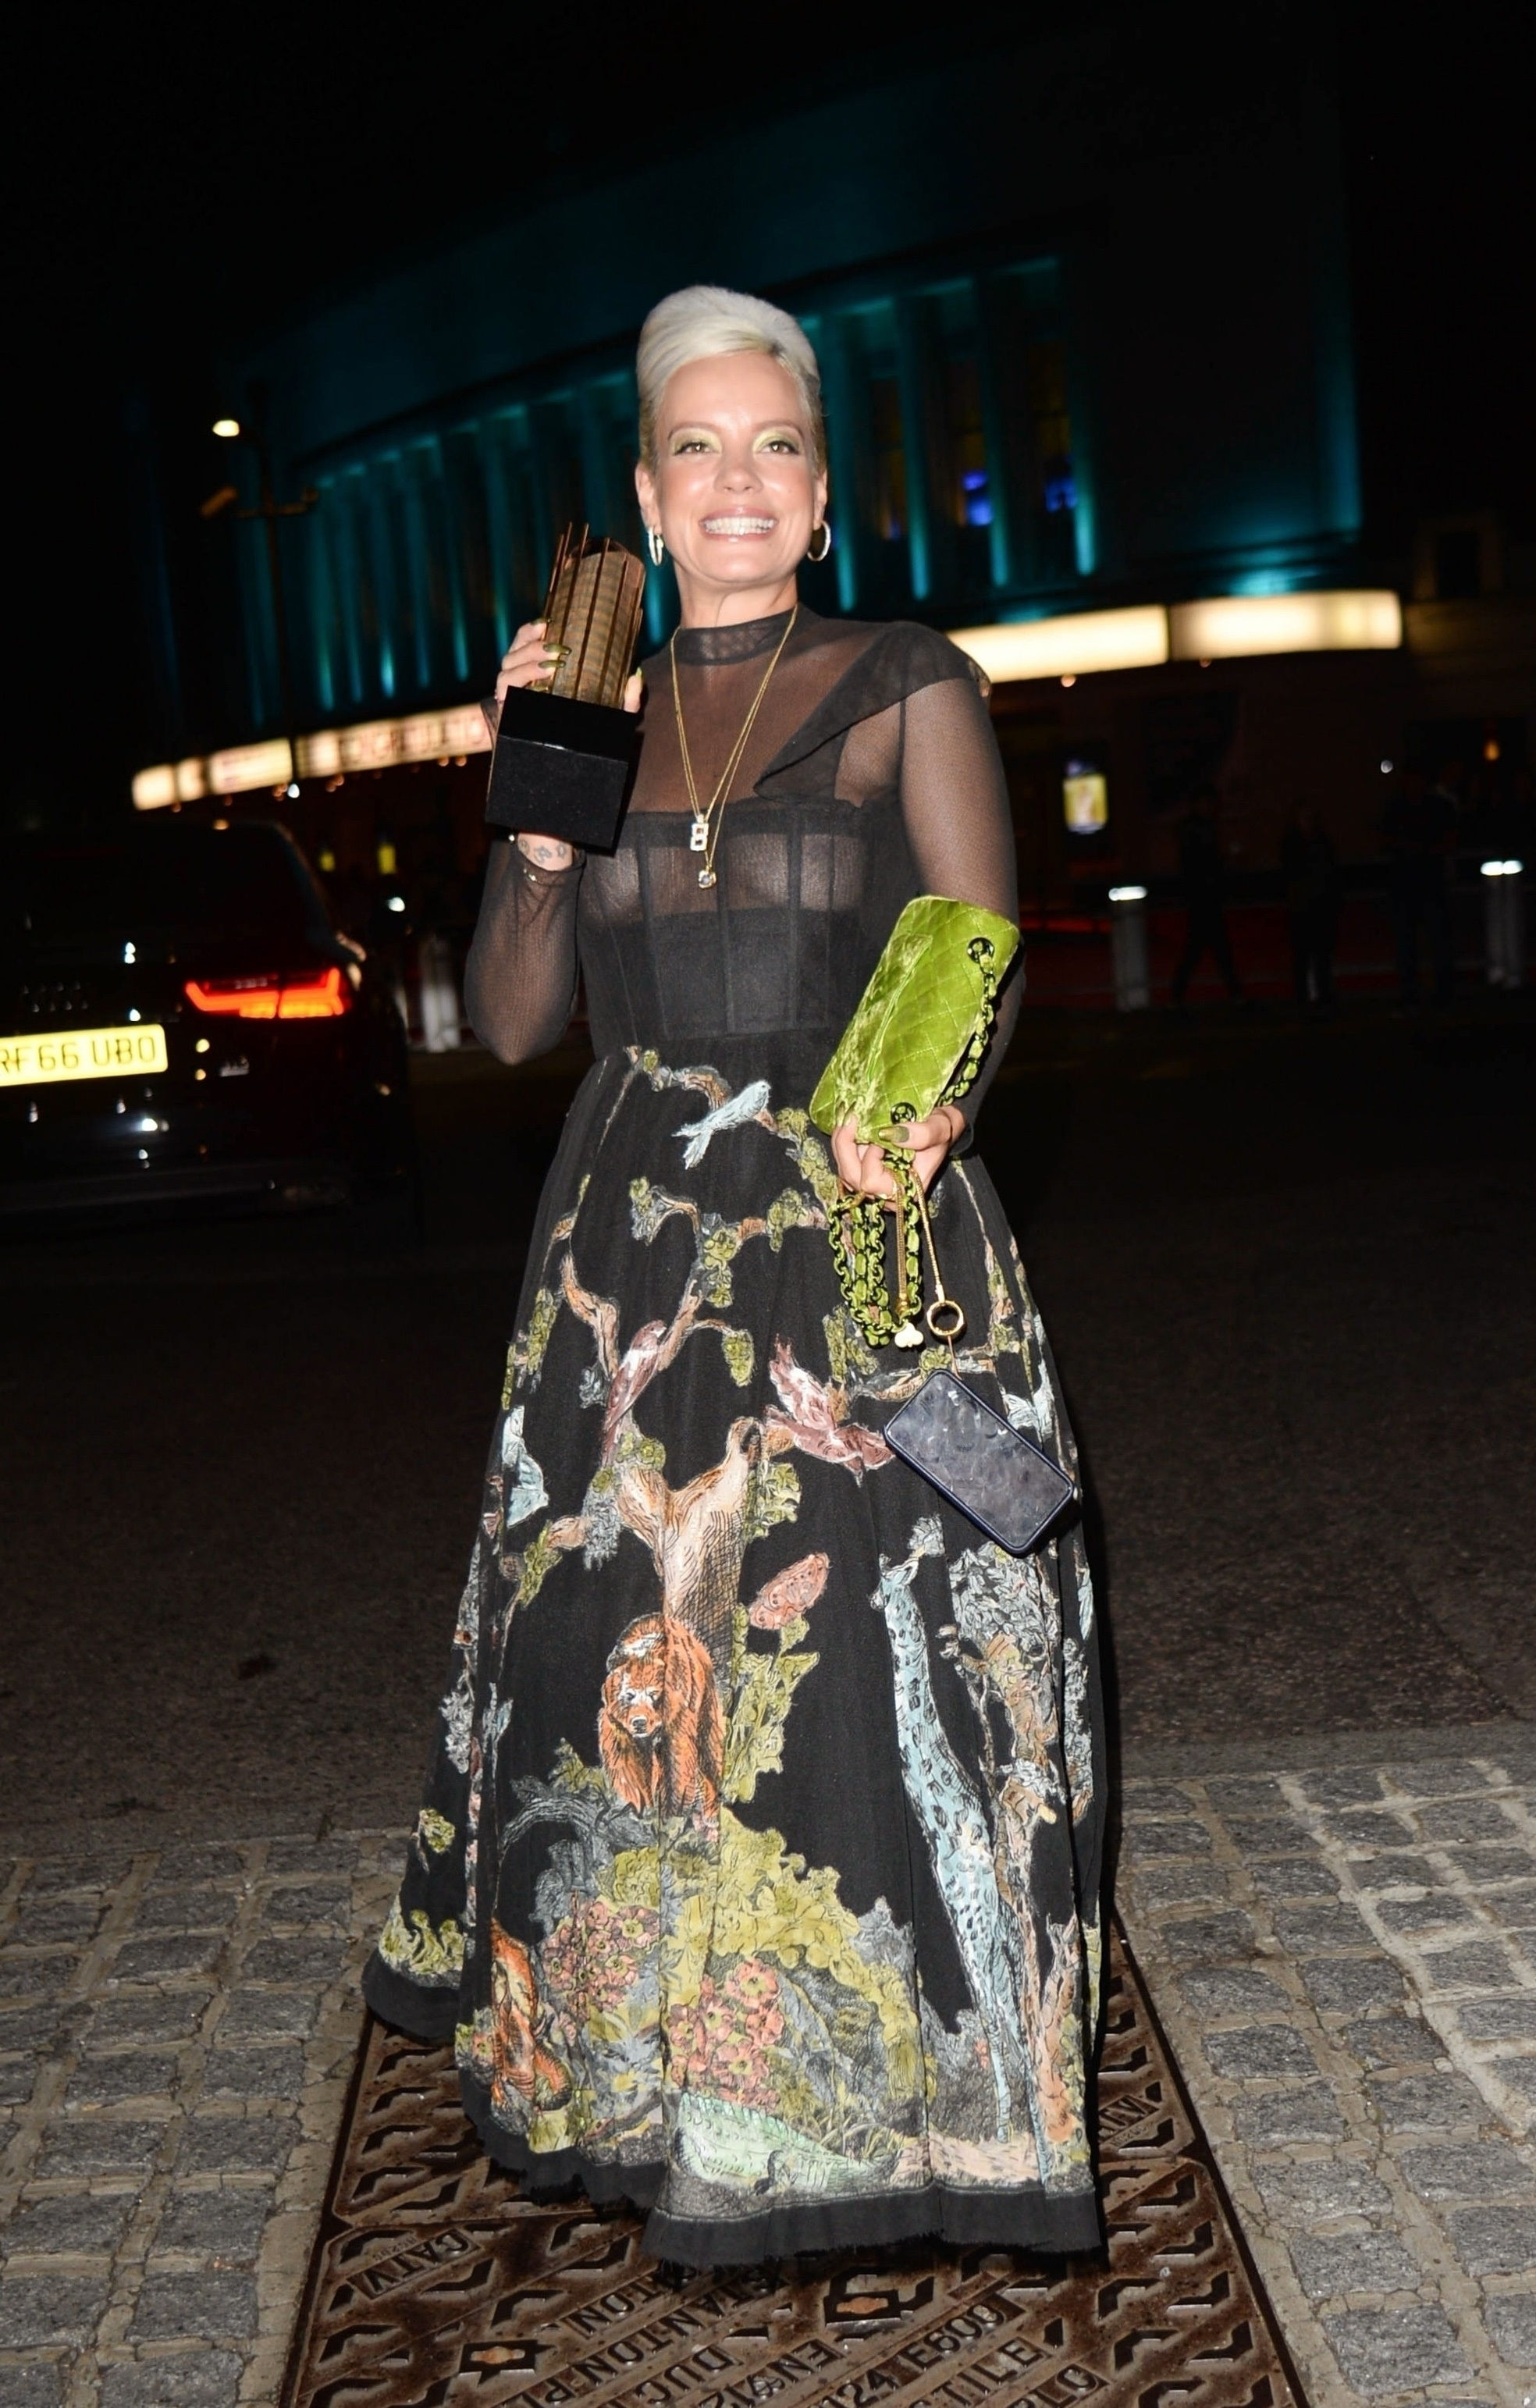 0919040453772_13_Lily-Allen-See-Through-TheFappeningBlog.com-14.jpg